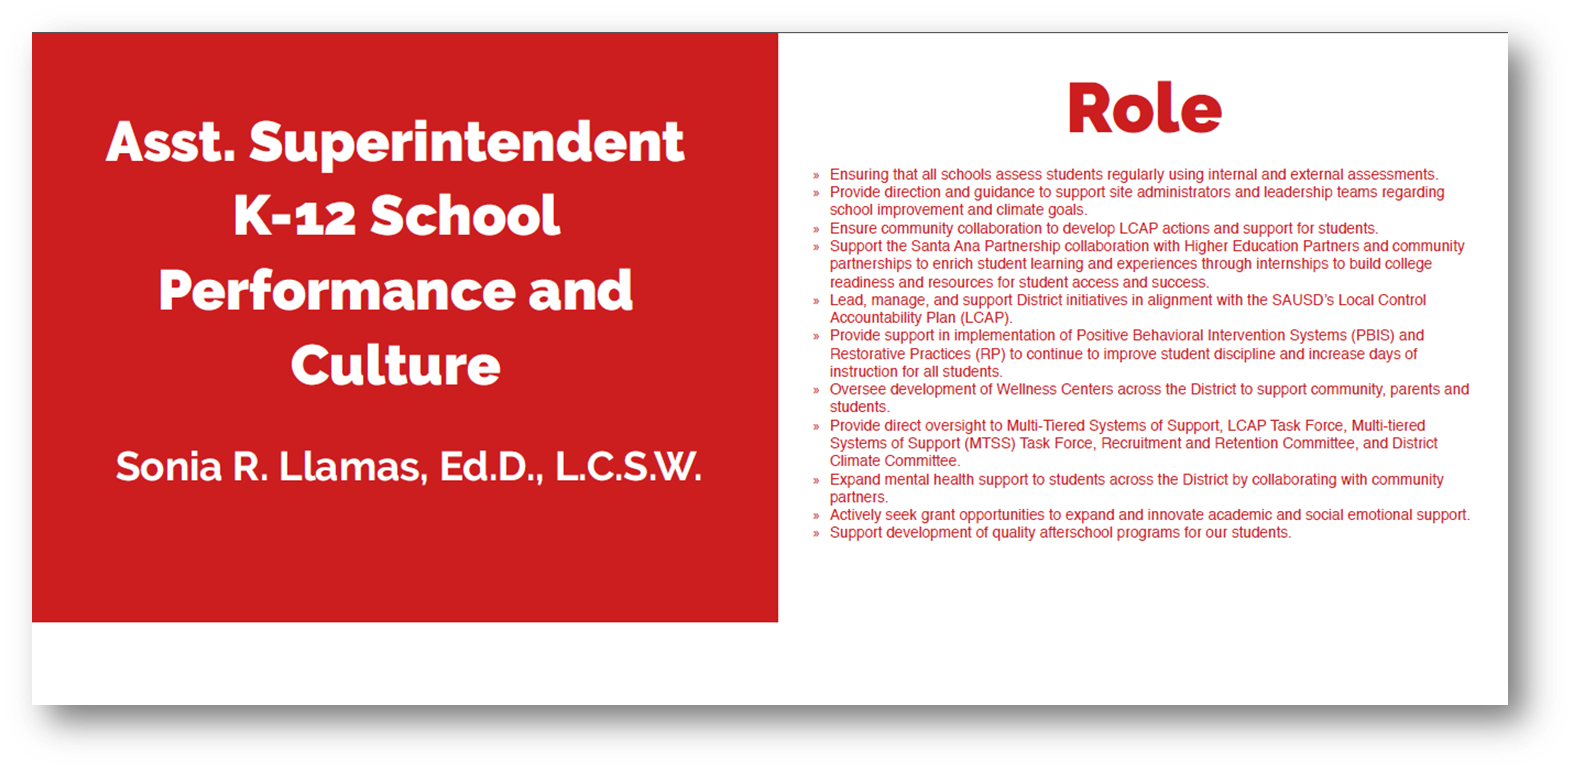 Asst. Superintendent K-12 School Performance & Culture - Role